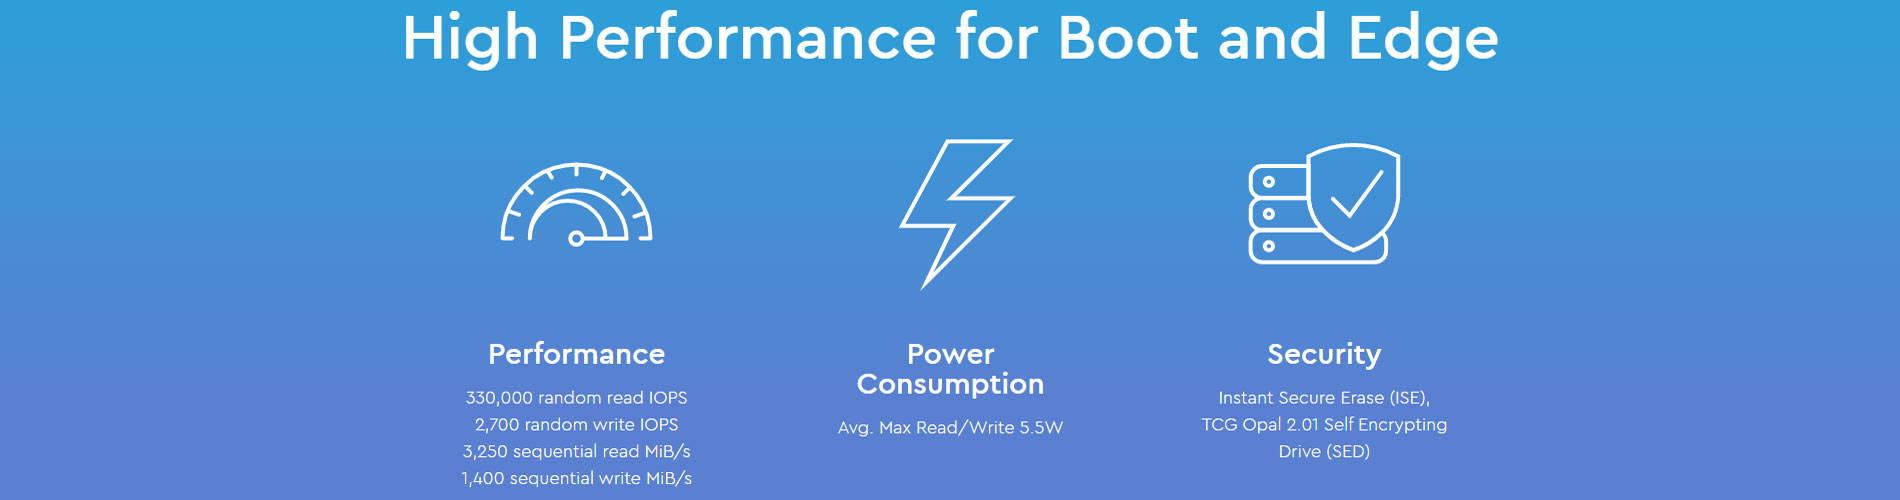 High Performance for Boot and Edge